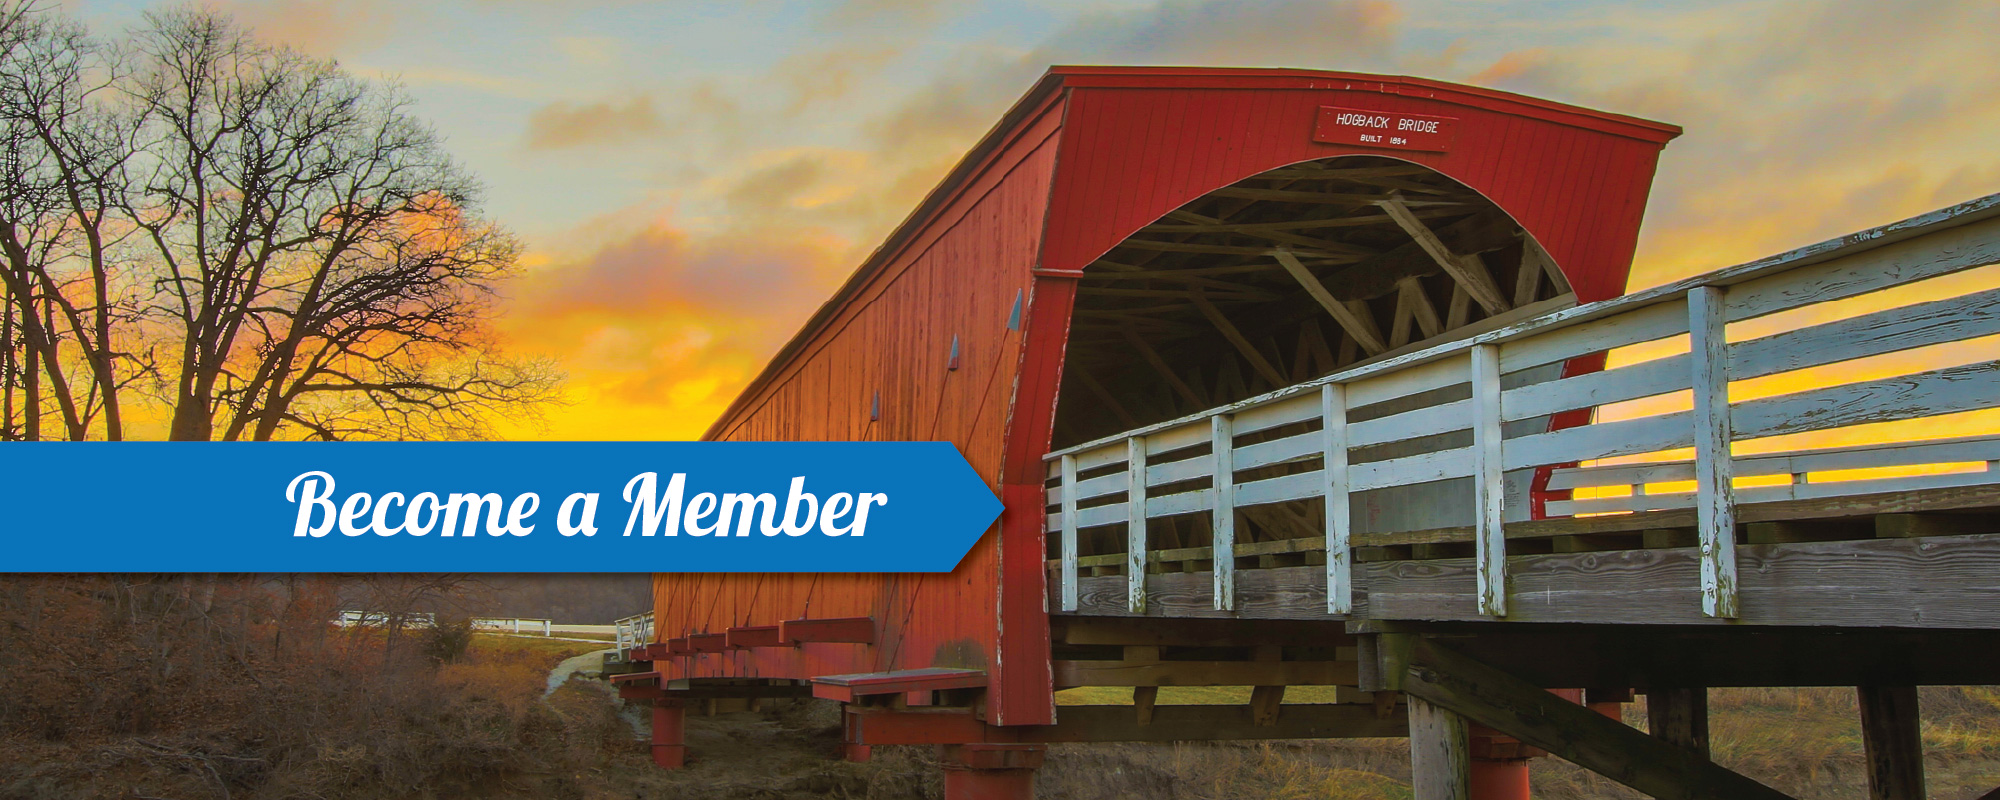 Central Iowa Tourism Region | Become a Member